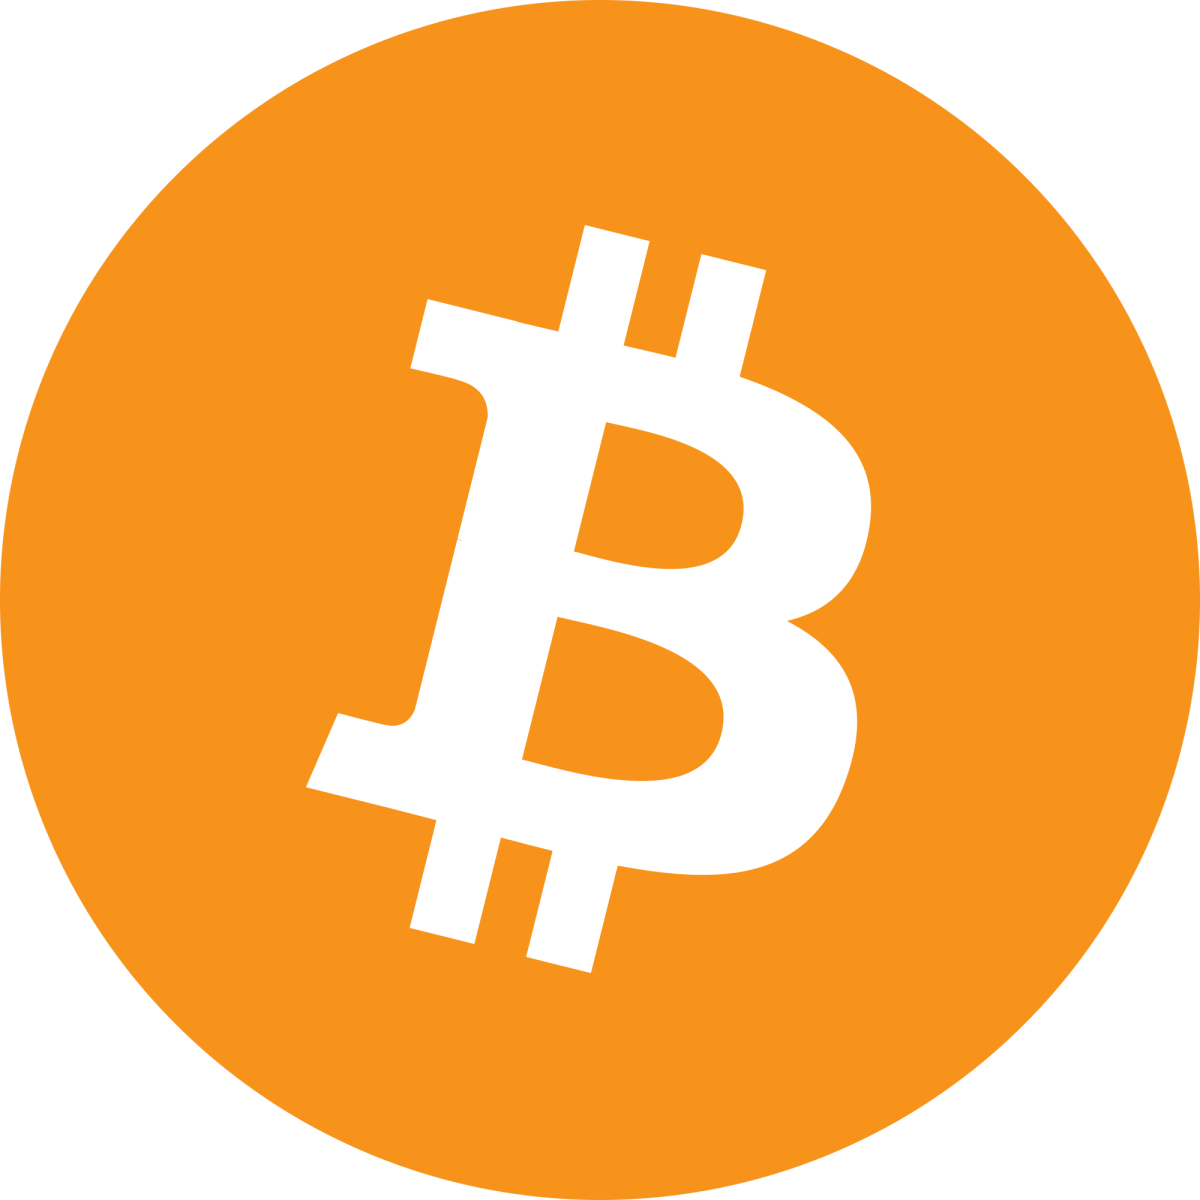 3. Bitcoin Should Be Worth Far More According to Bloomberg